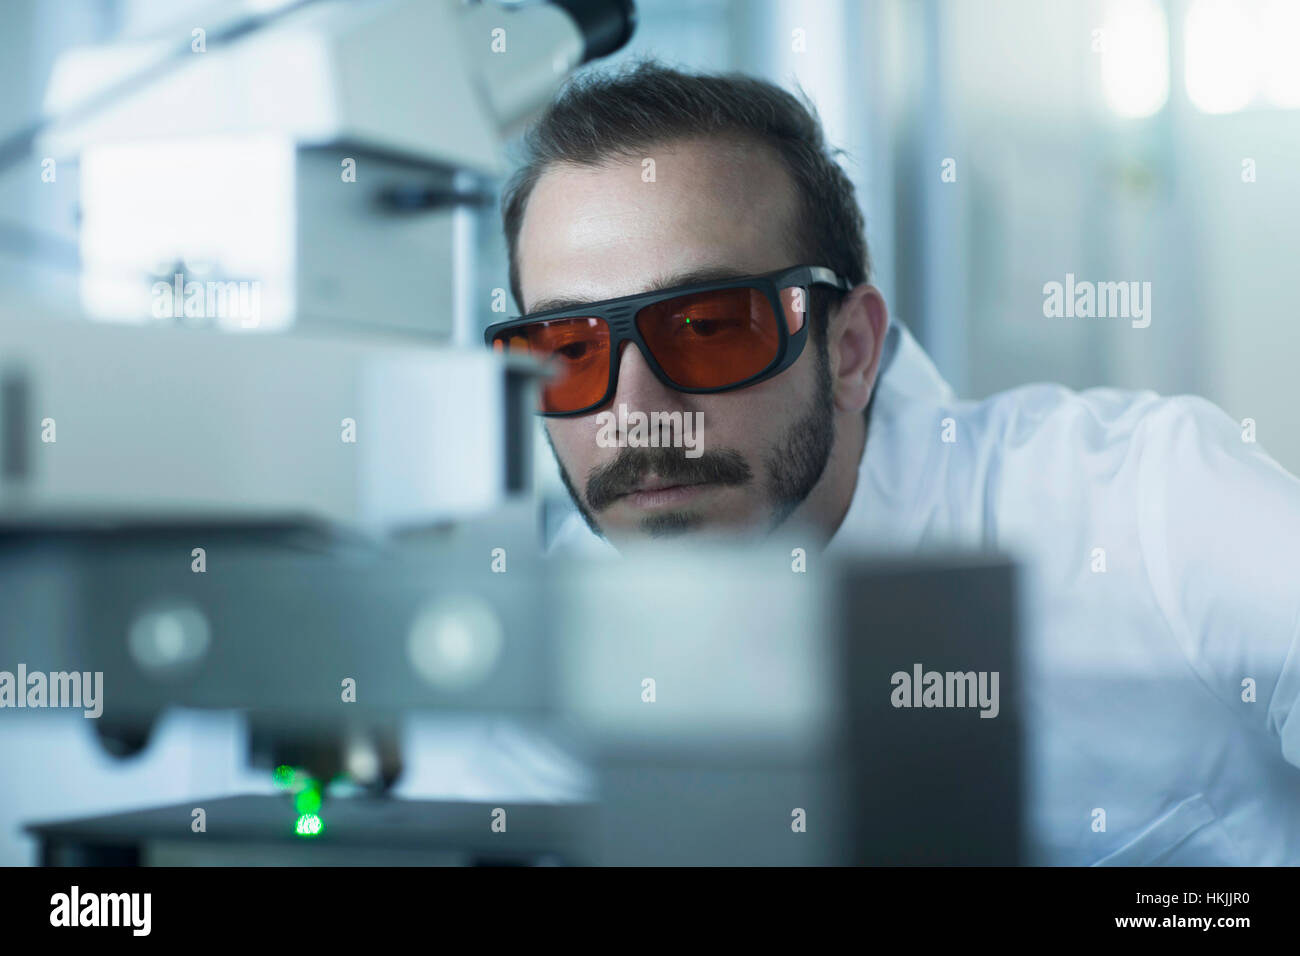 Young male scientist working in technology space, Freiburg Im Breisgau, Baden-Württemberg, Germany - Stock Image